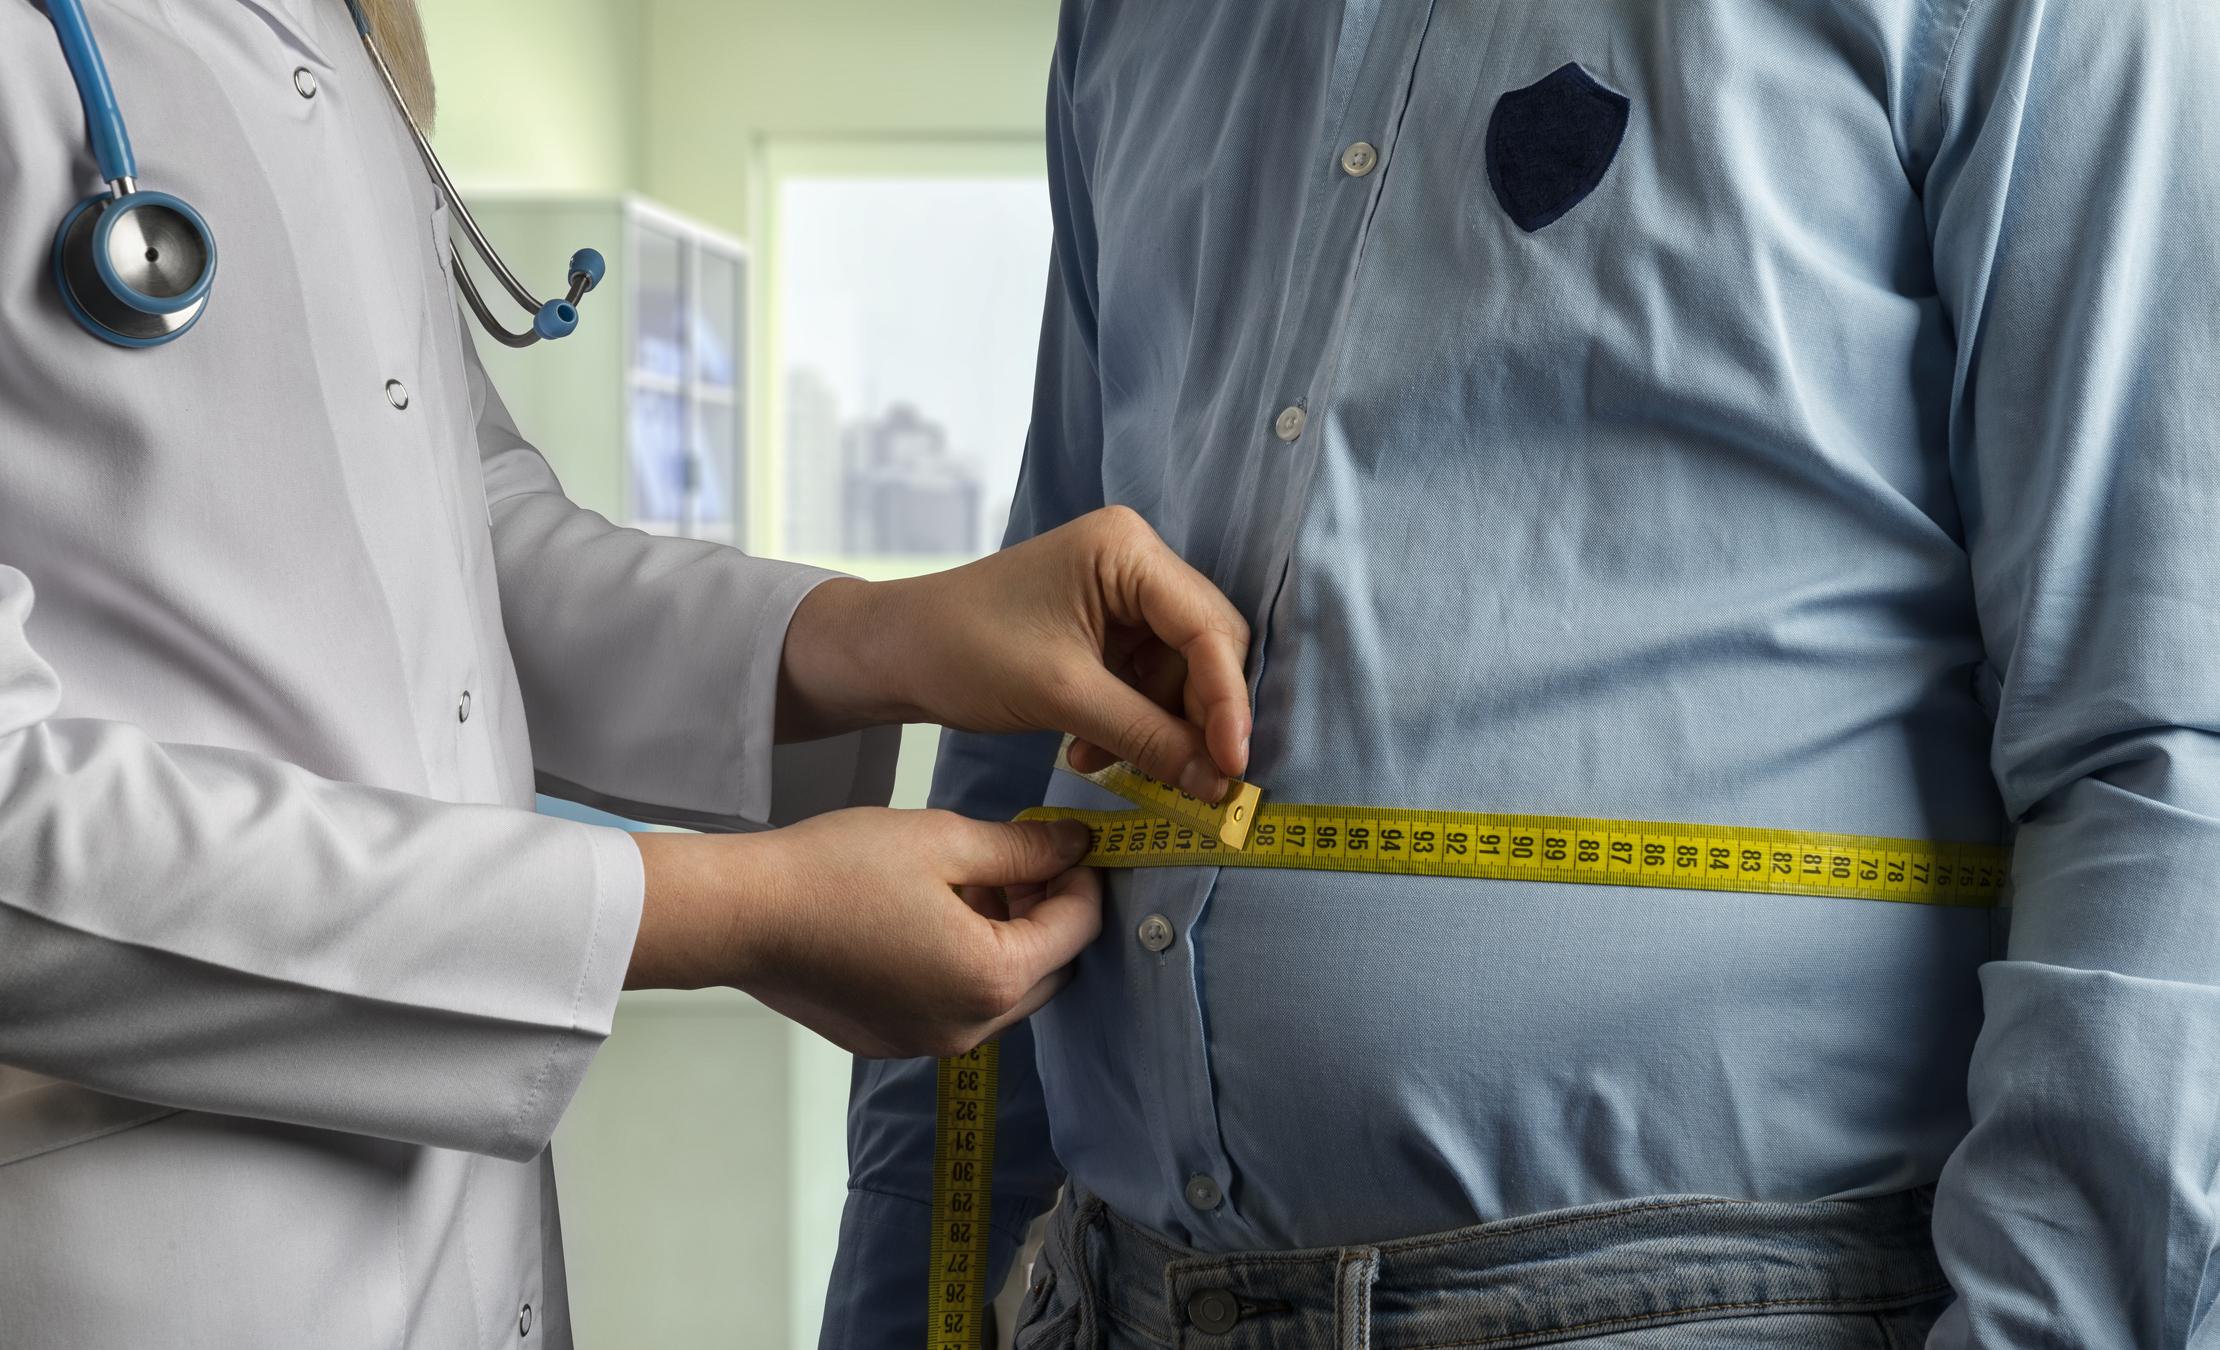 A doctor working with an overweight patient on his health